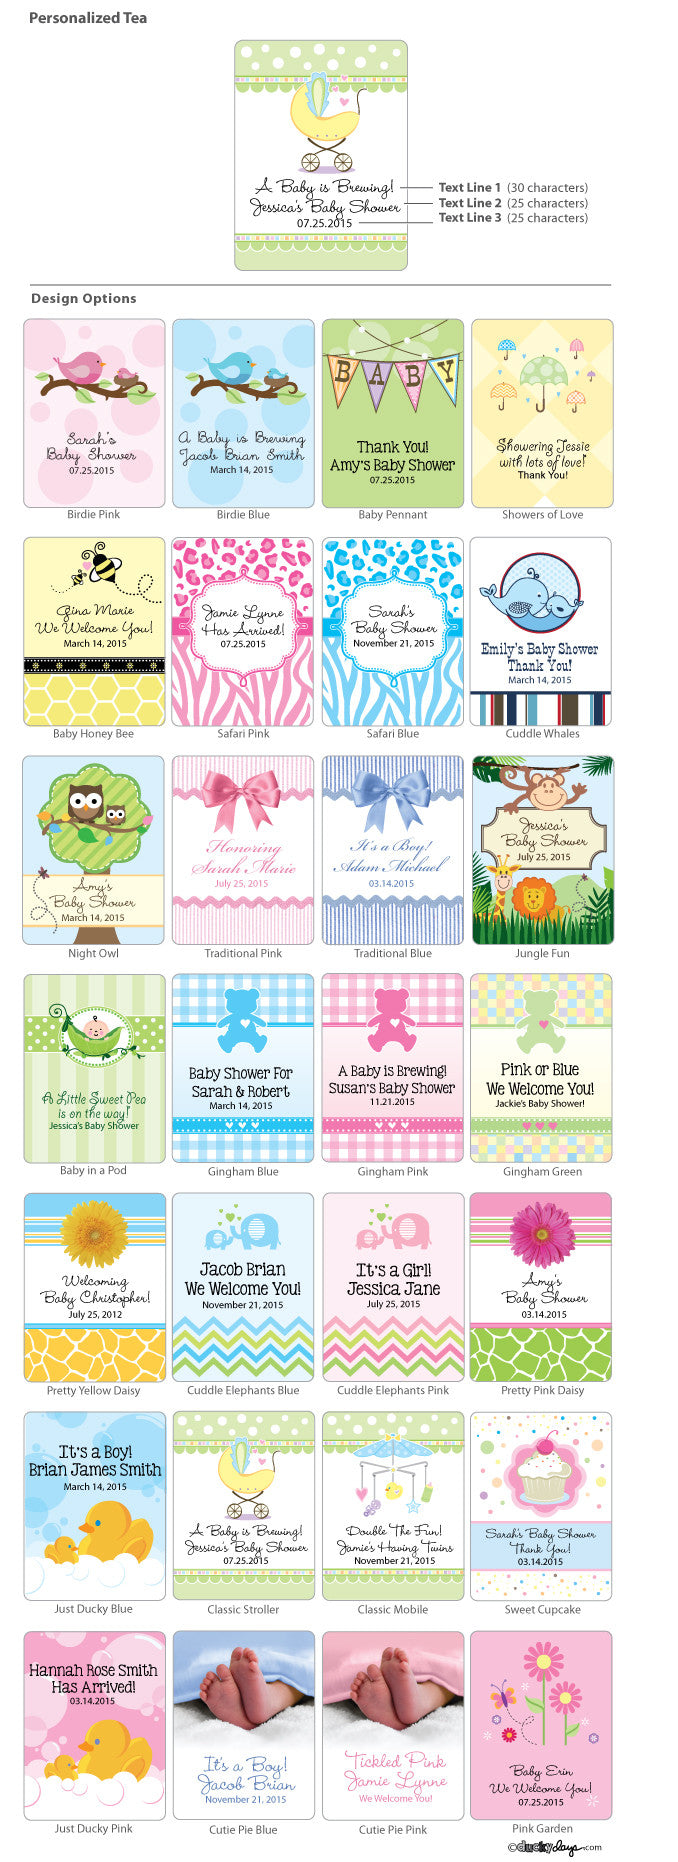 Baby Shower Personalized Tea Bags